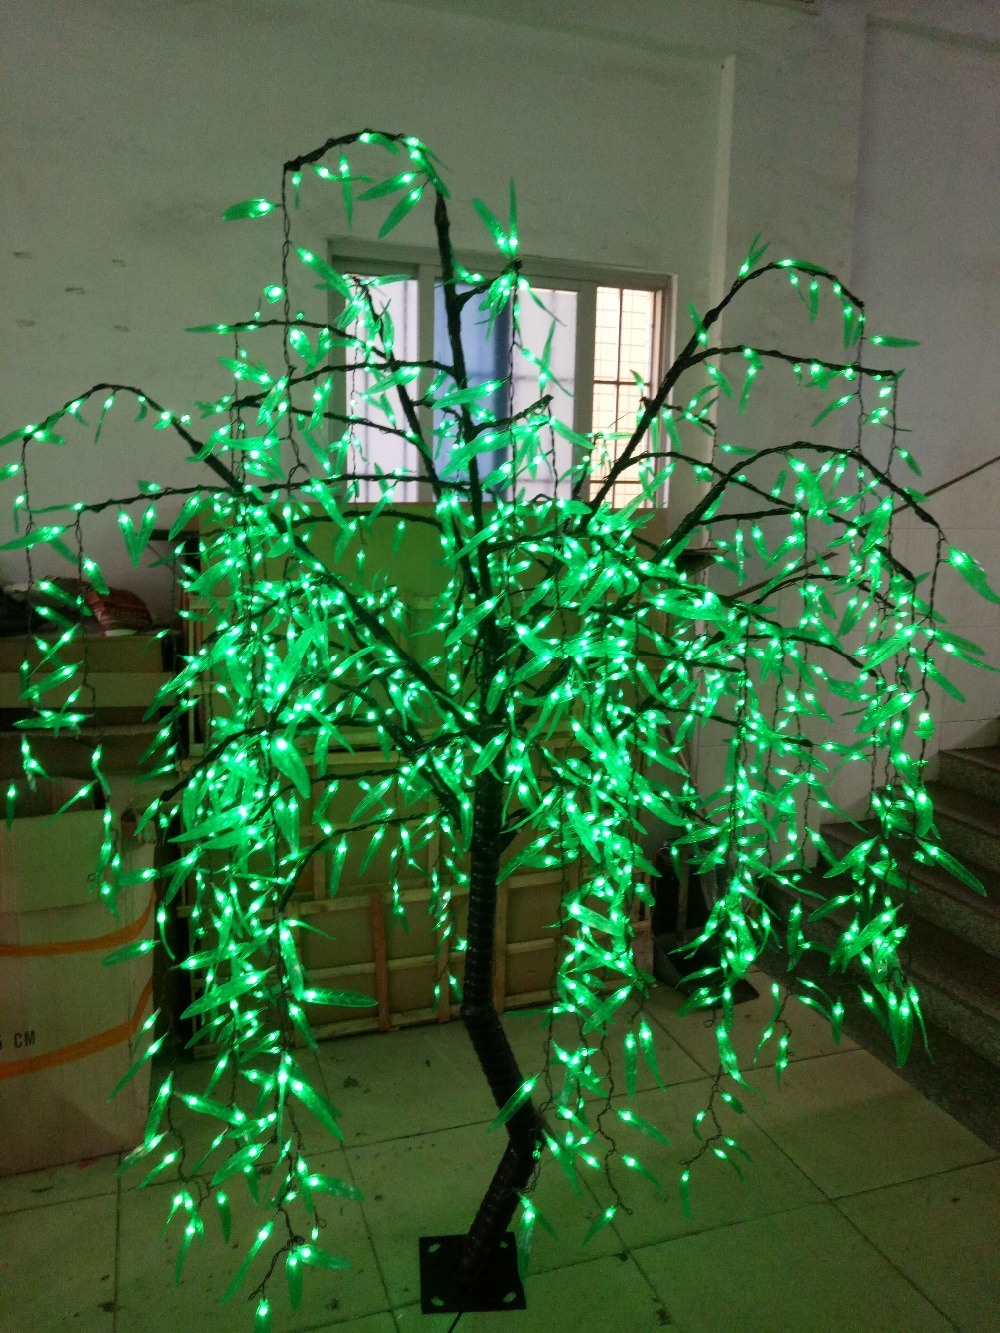 2M LED Artificial Willow Weeping Tree Light 1152pcs LEDs Green Color Indoor Outdoor Use Christmas/Holiday/Garden/PartY decor фигурка willow tree благословение высота 14 см